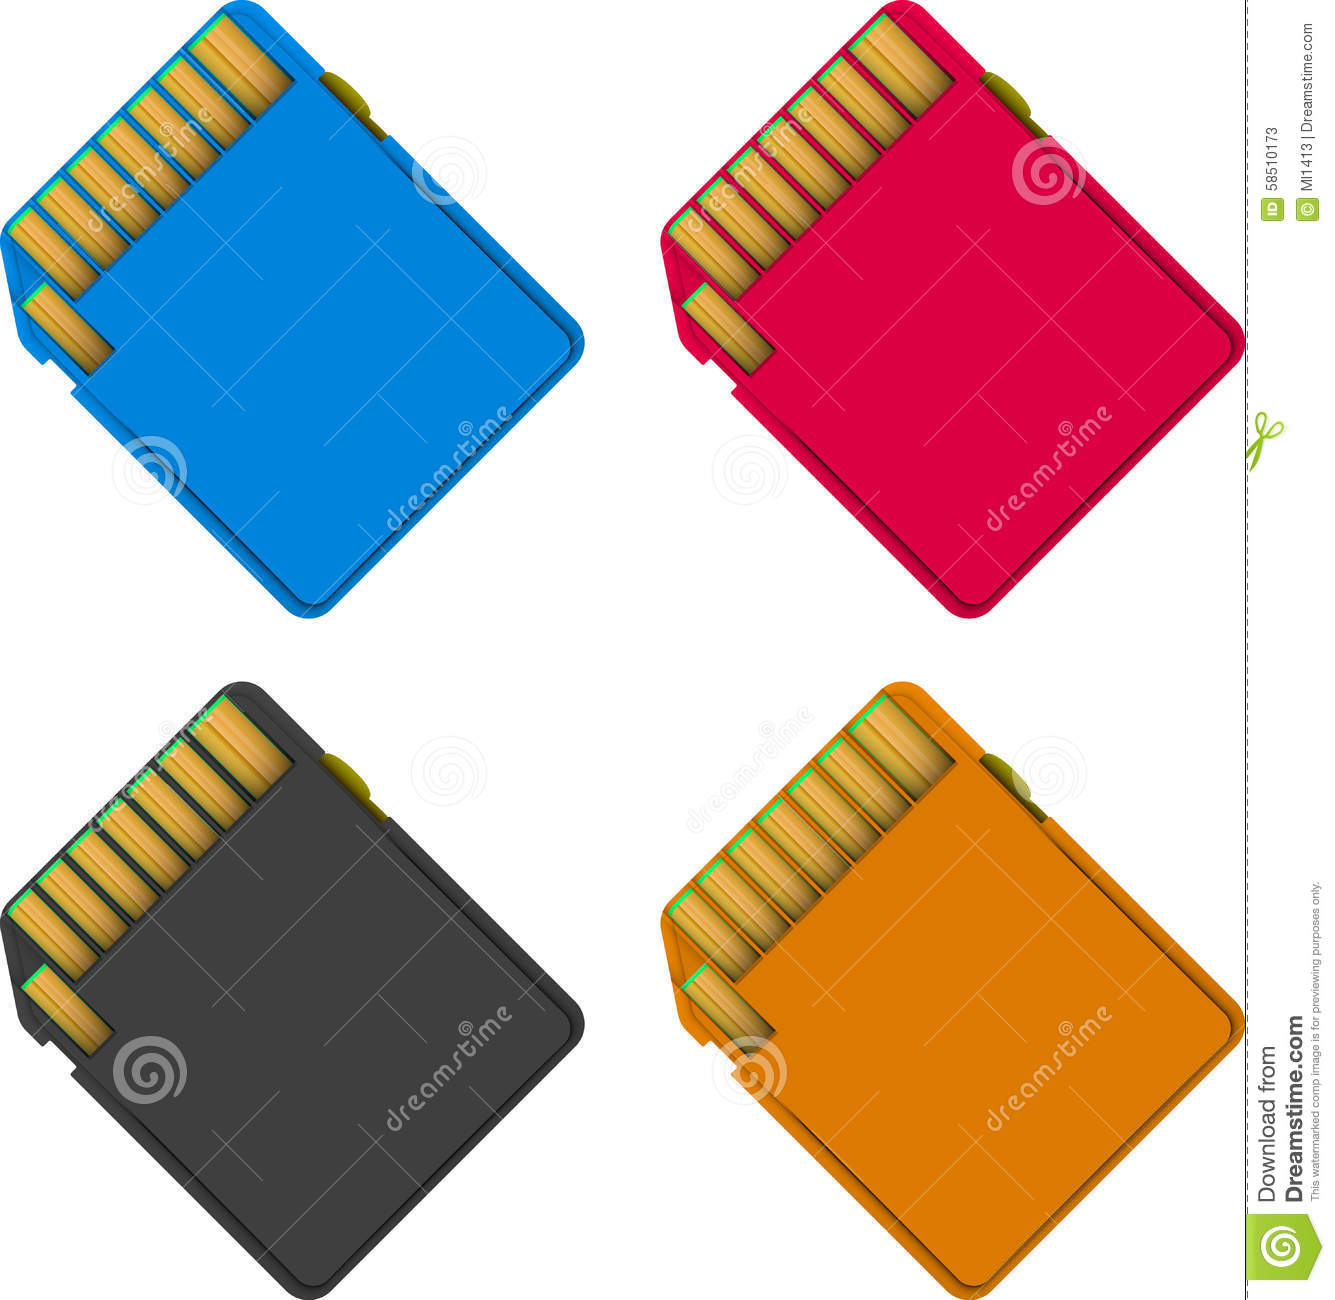 how to change a micro sd card from read only